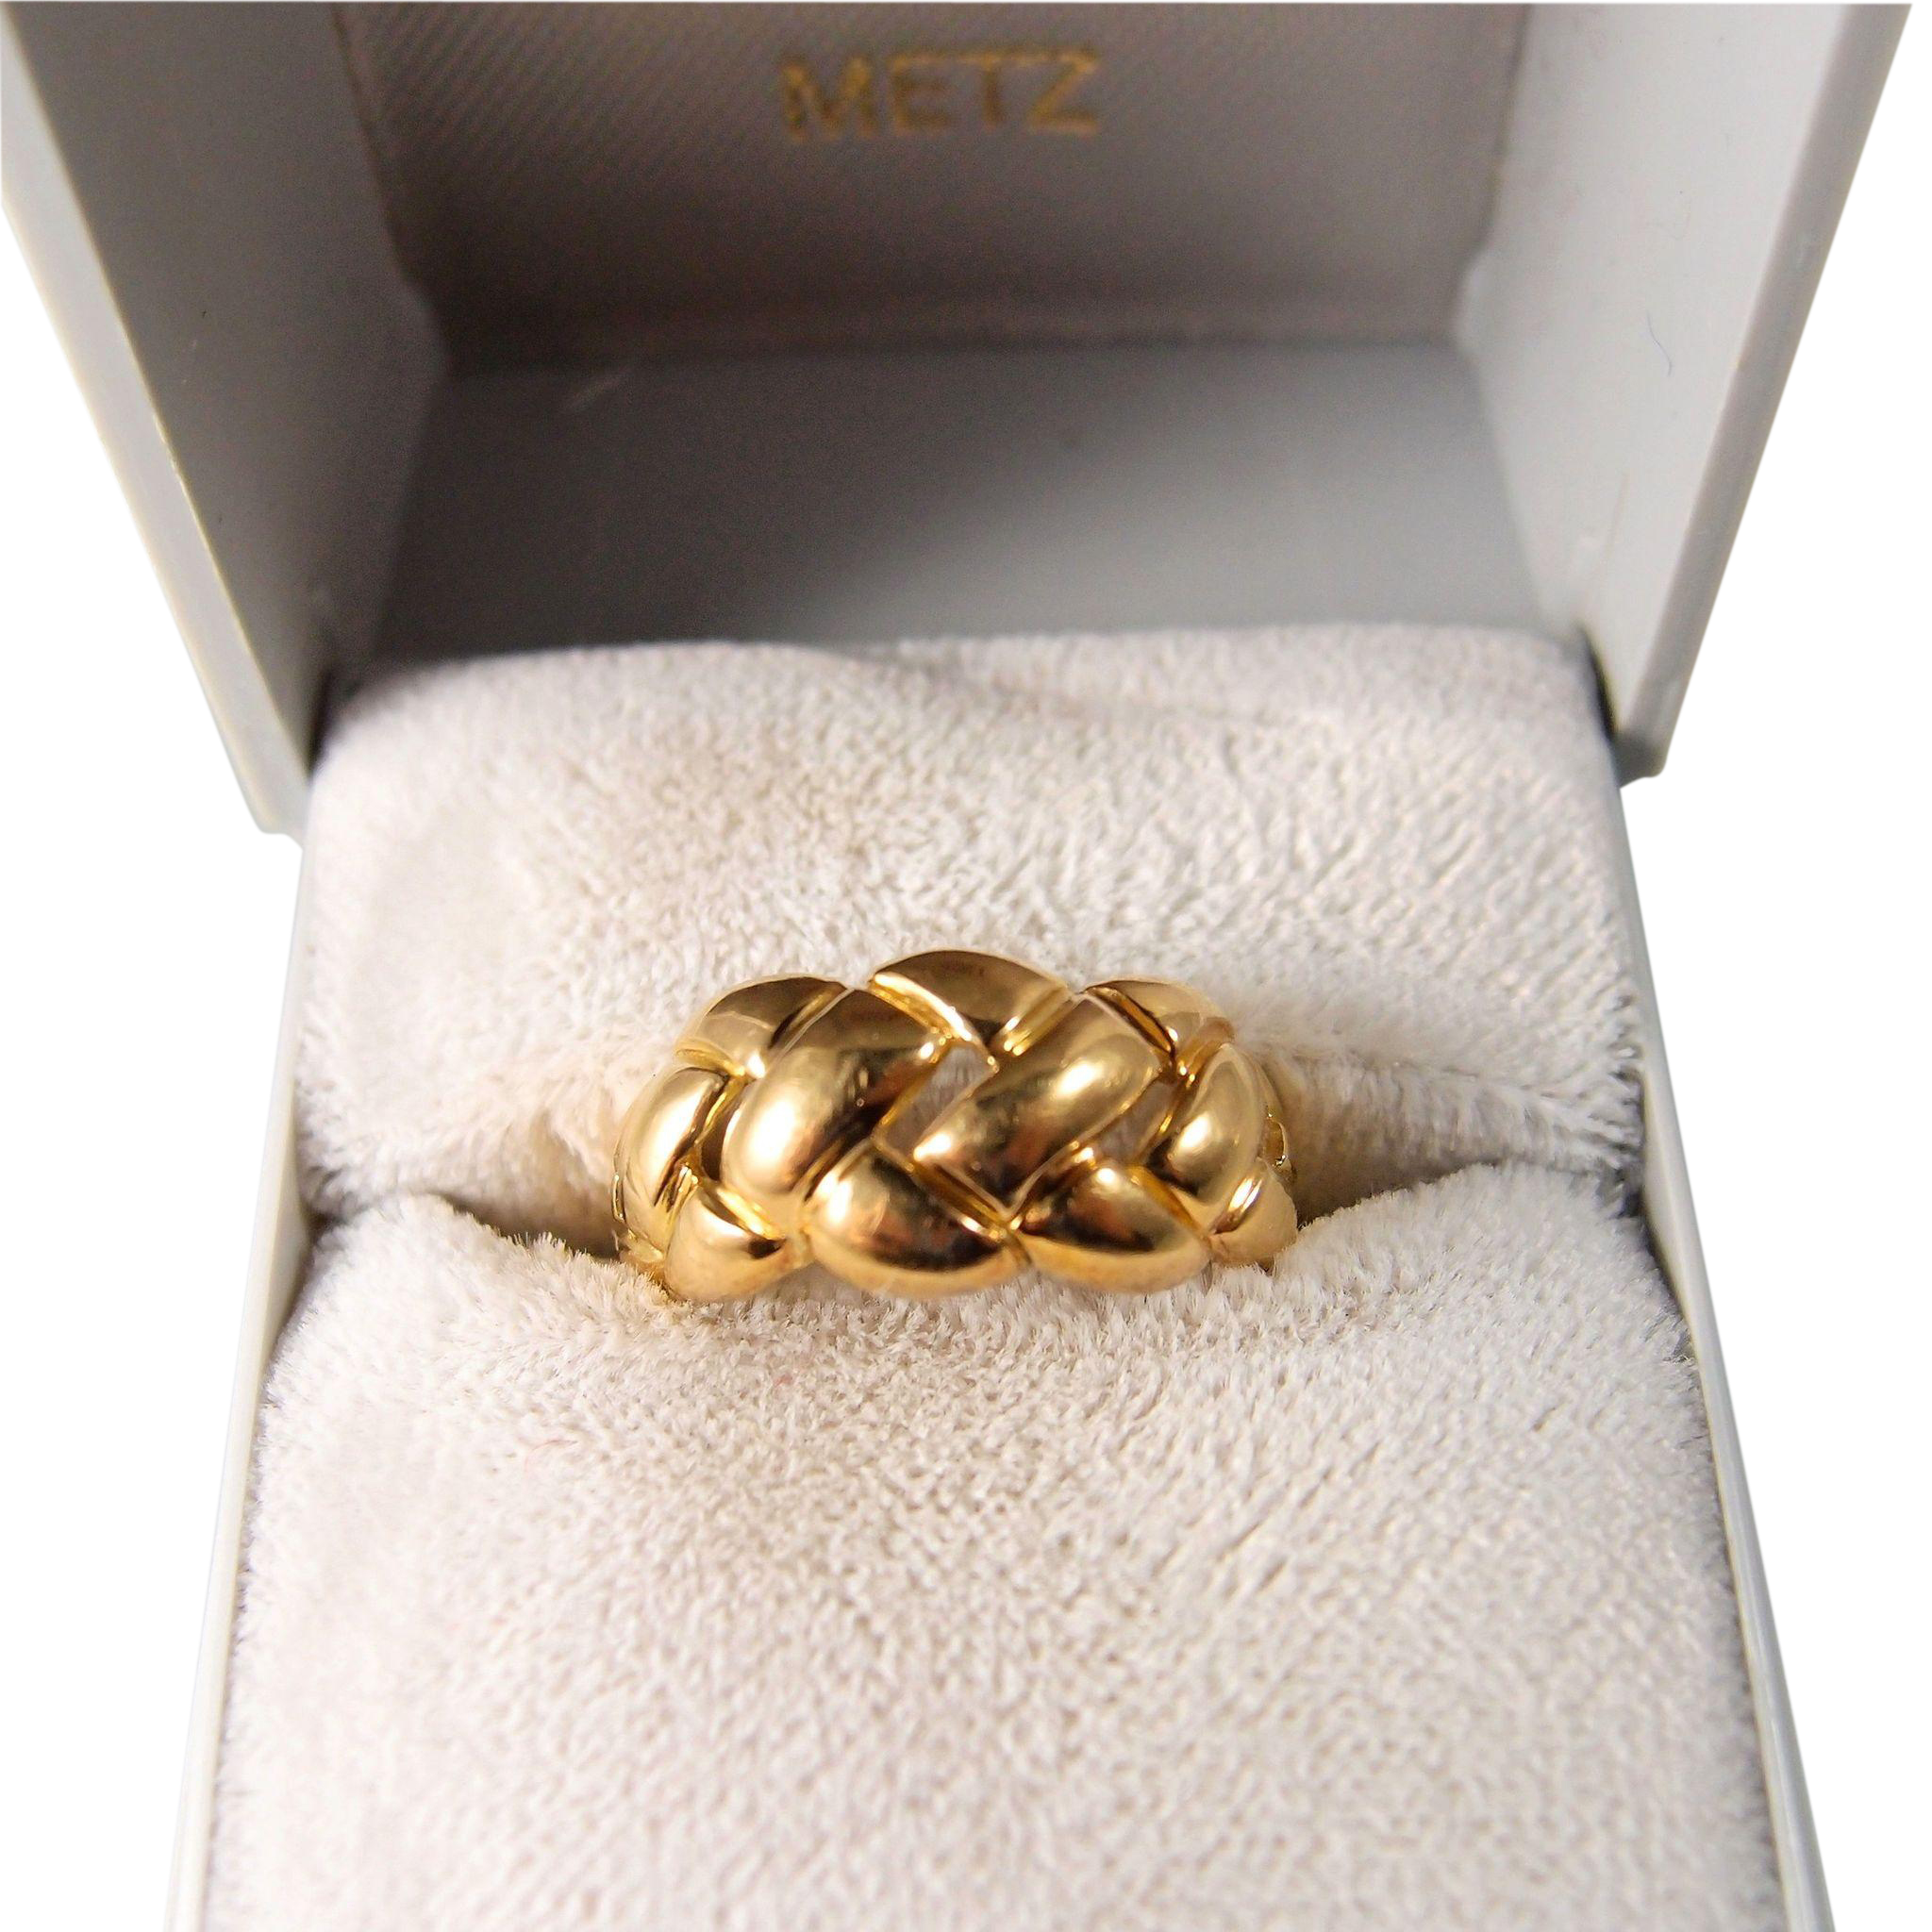 the unique mensweddingbands announced adding jewellery after chupi men be new of collection we enquiries recently wedding gold cufflinks mens re blog solid form in s bands now years design to band delighted first our